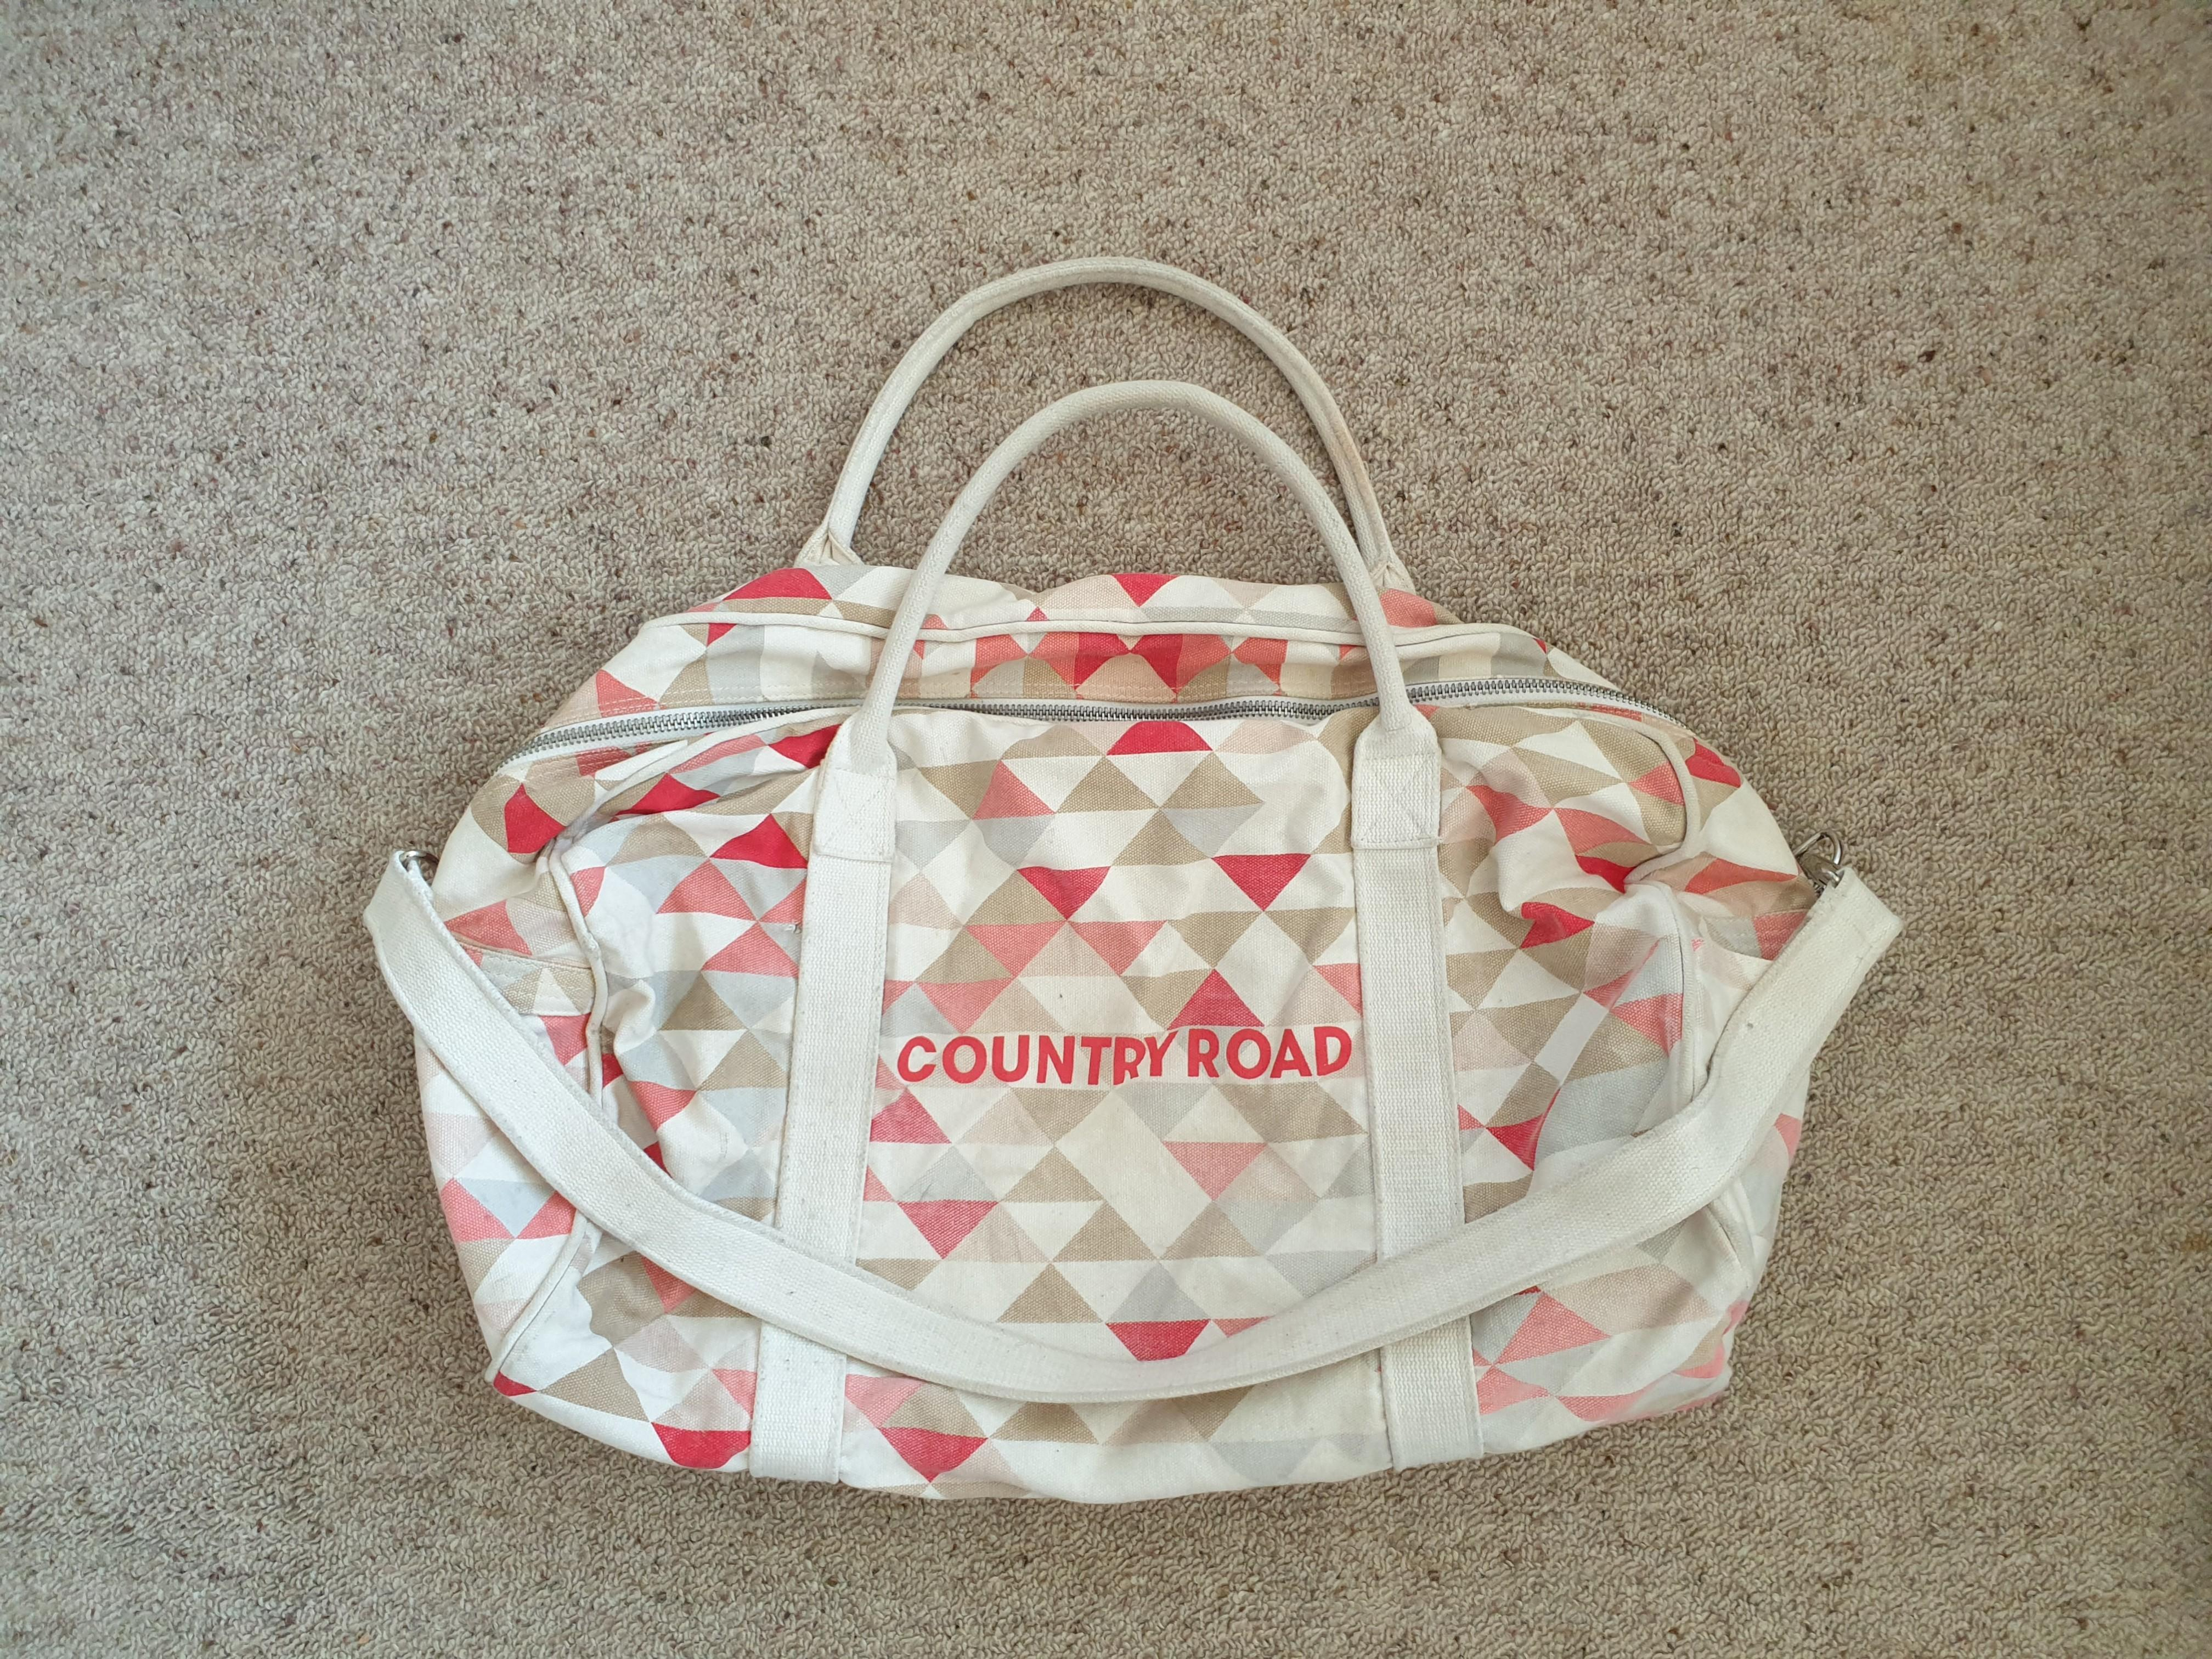 Country Road duffle